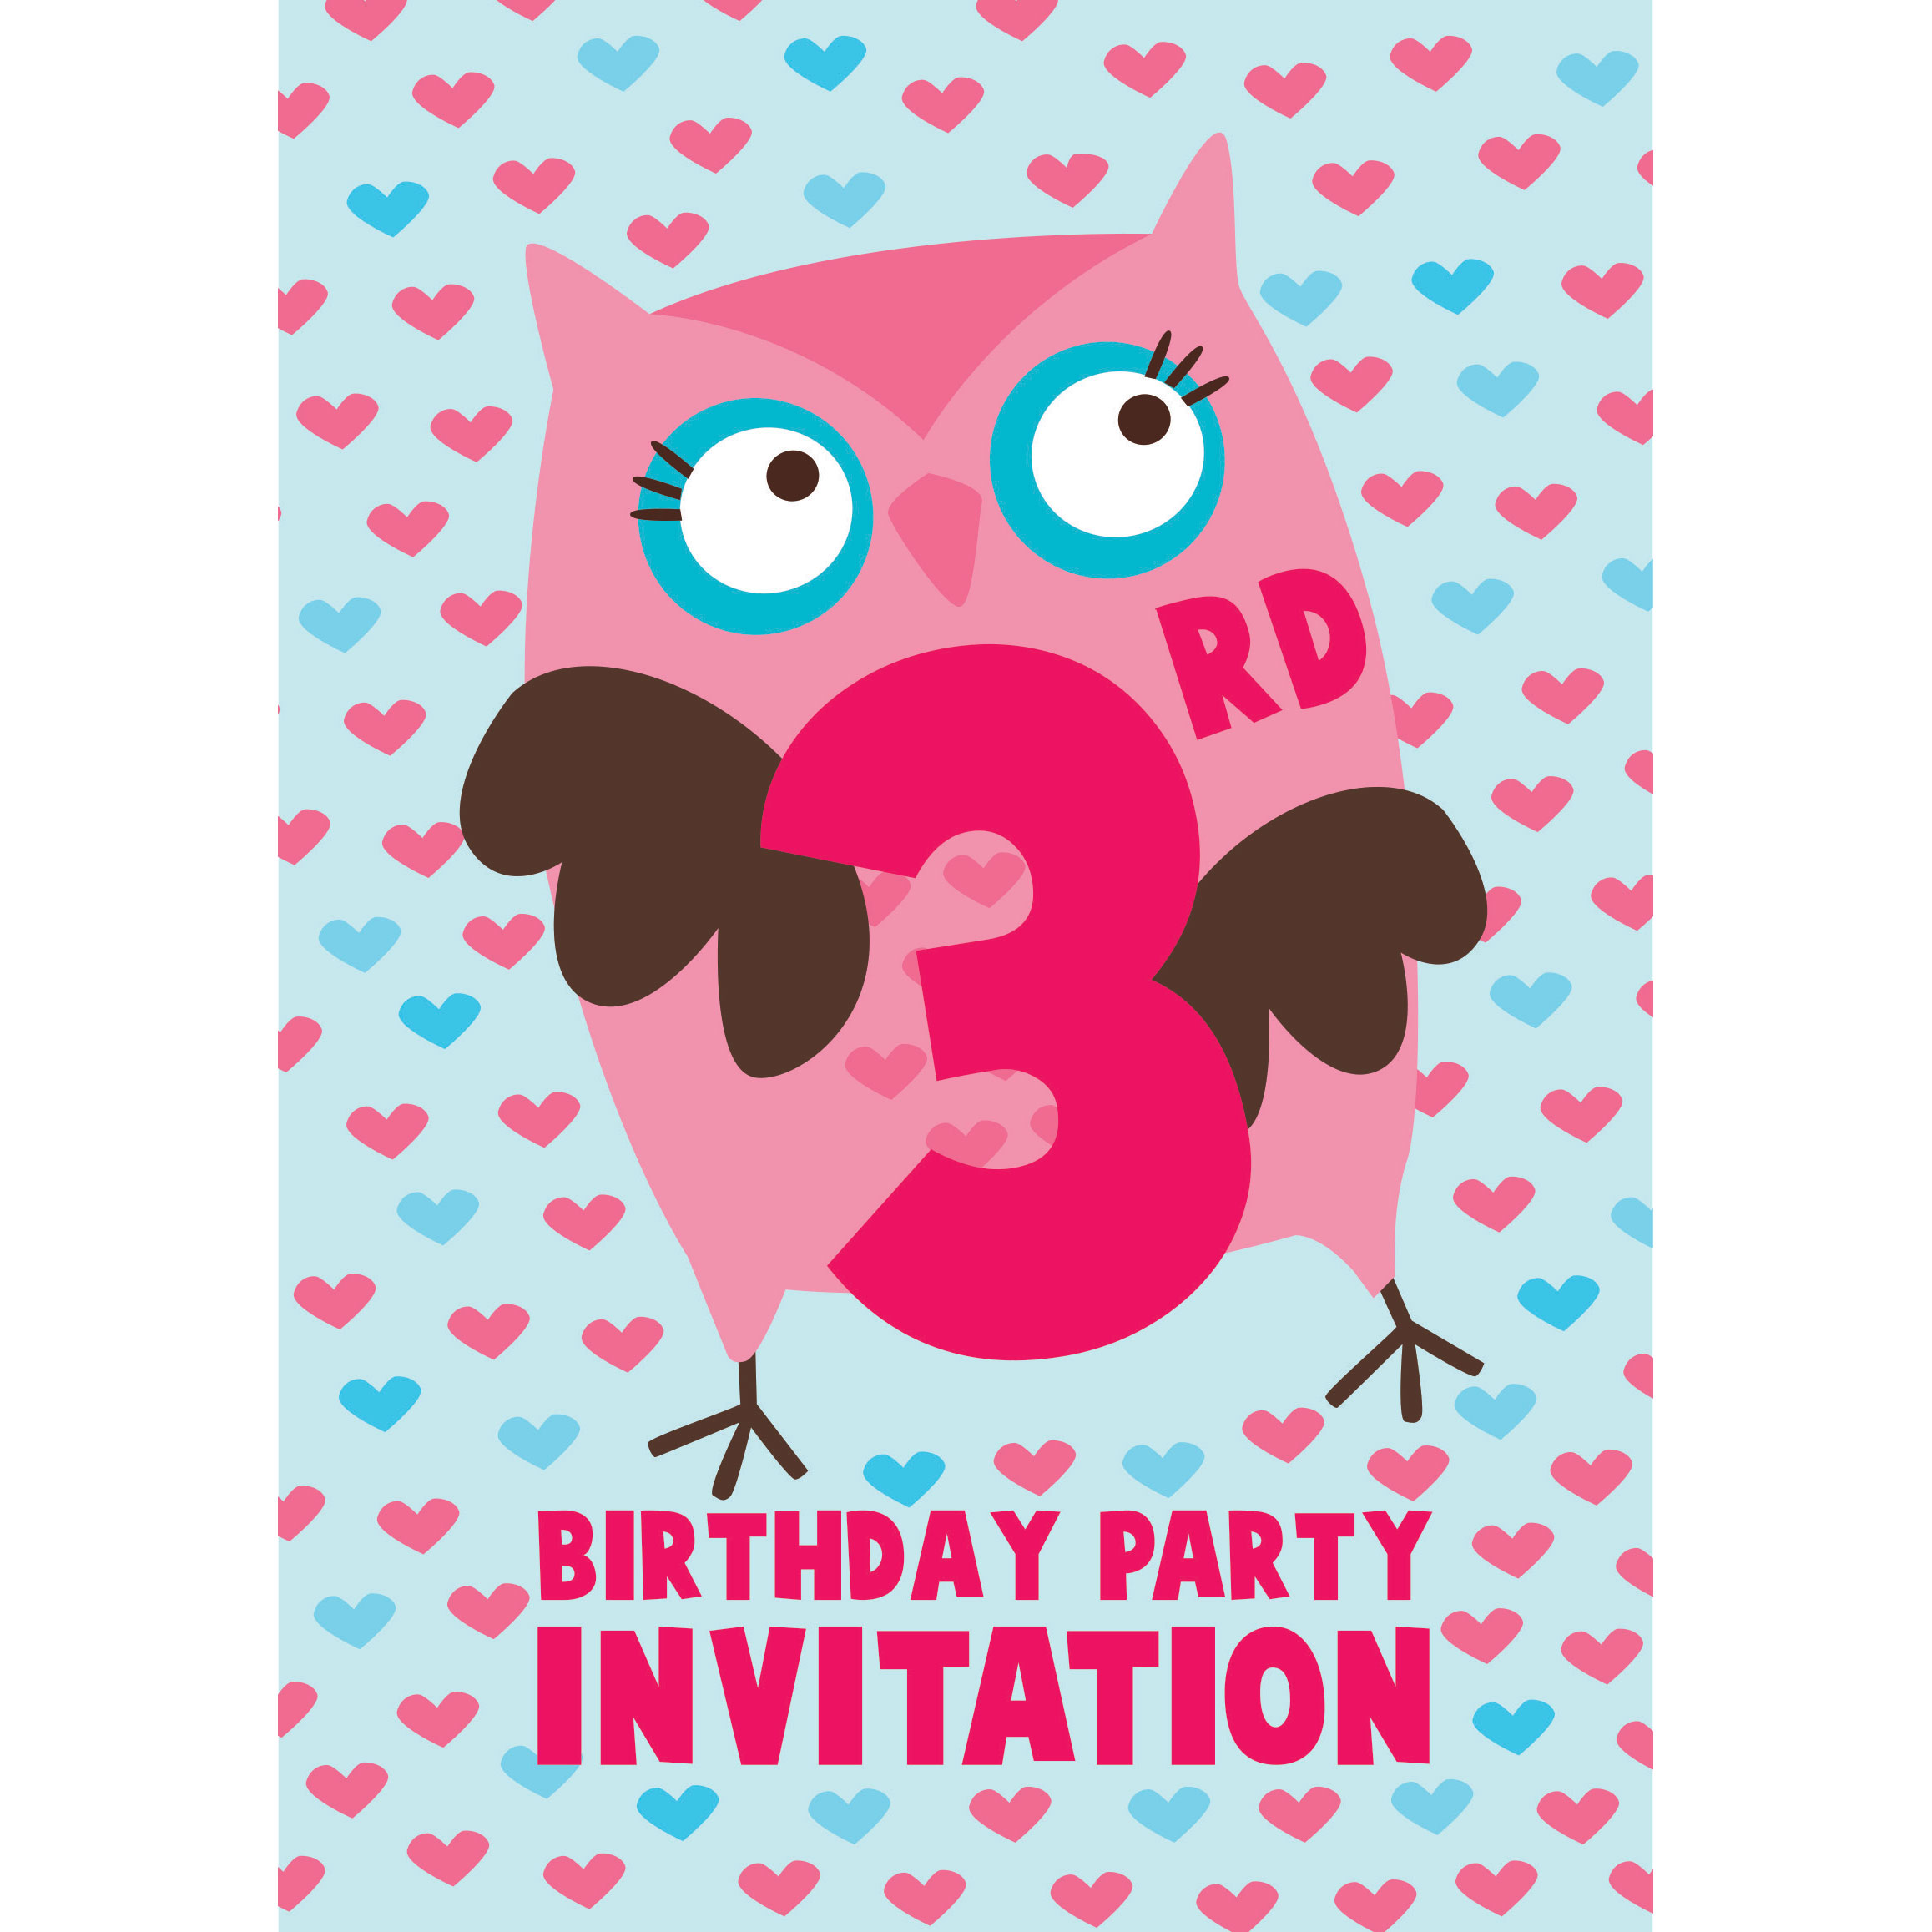 3Rd Birthday Invitations is an amazing ideas you had to choose for invitation design